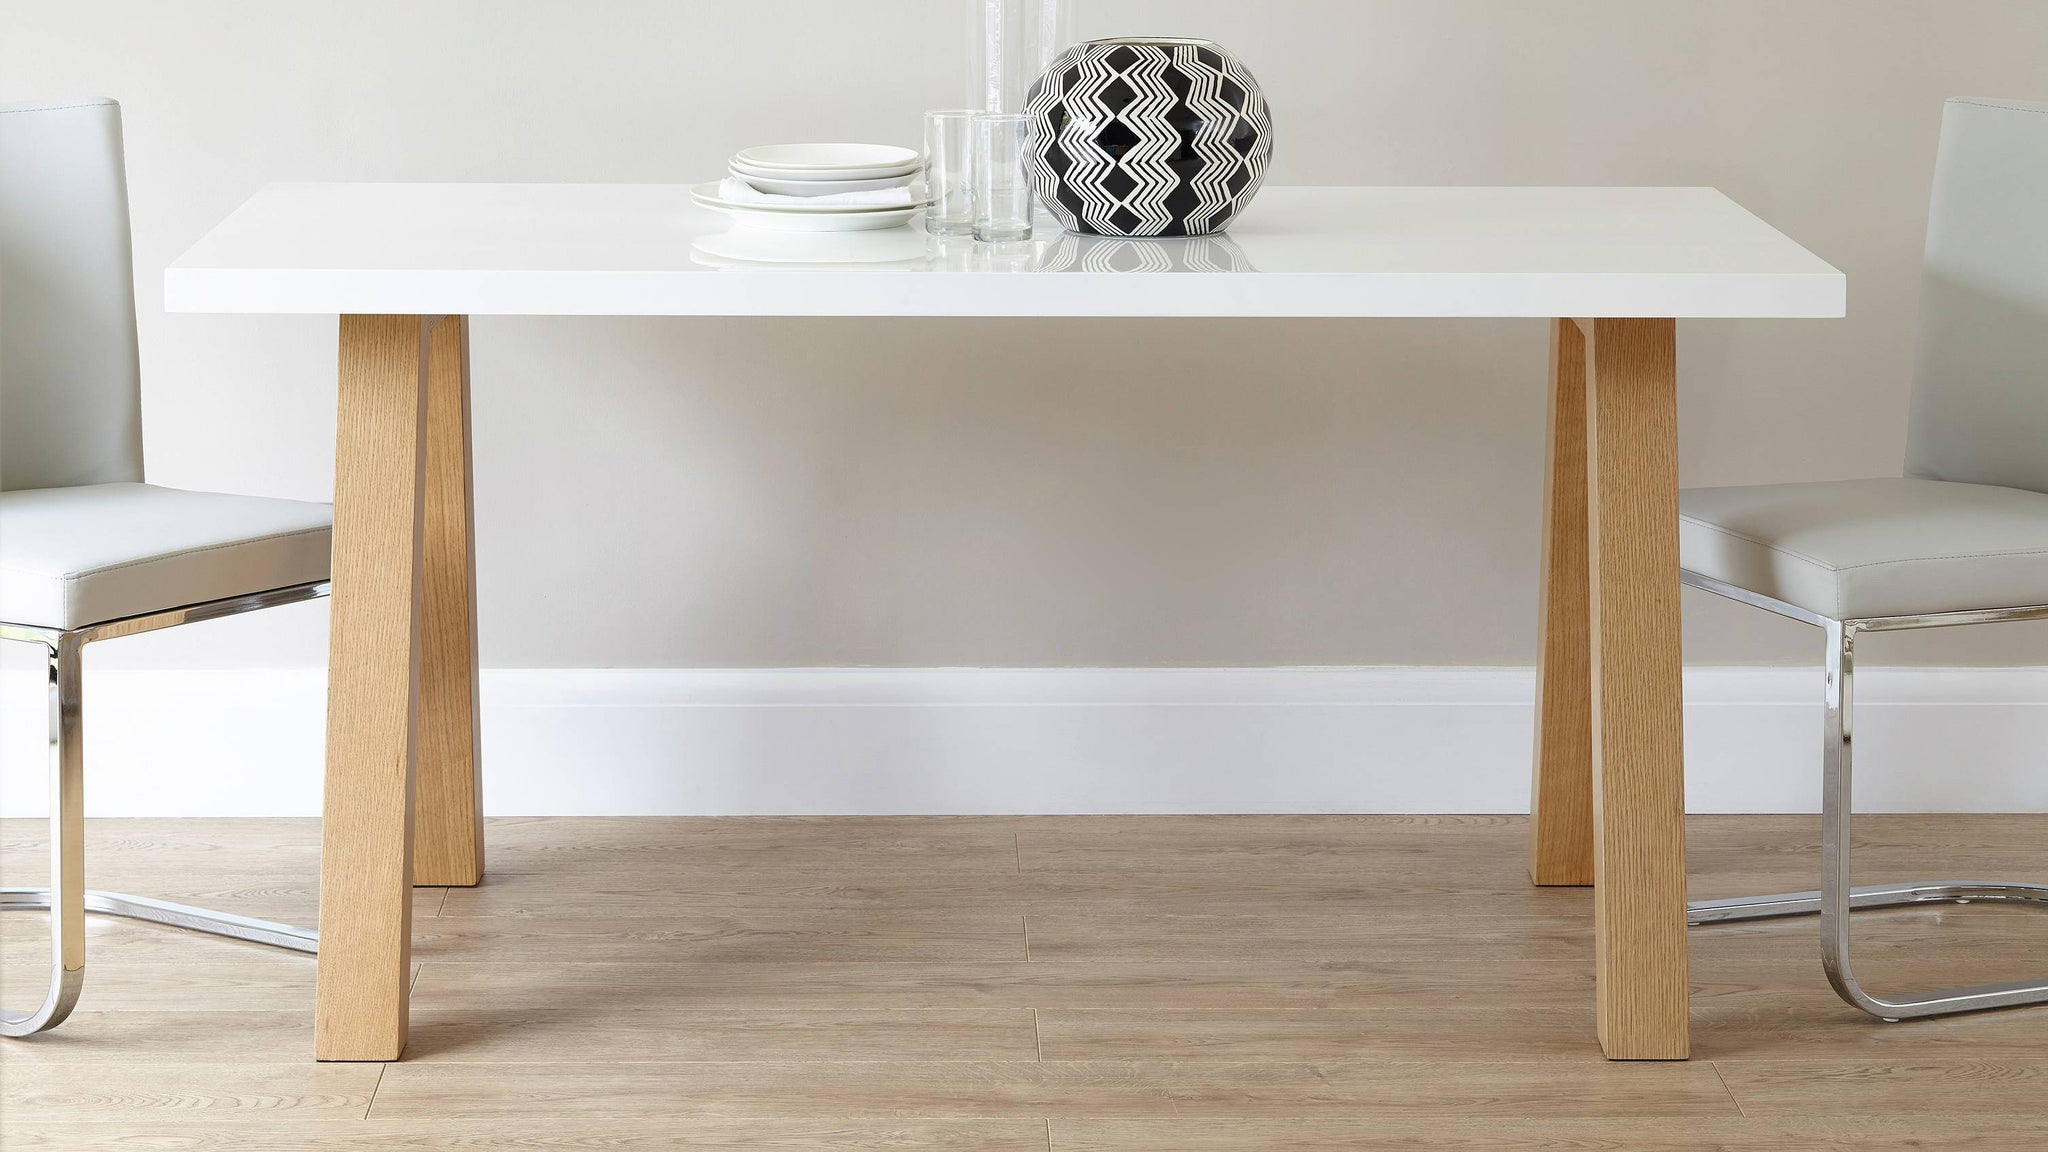 Oak and white gloss 6 seater dining table Exclusively Danetti with Julia Kendell range